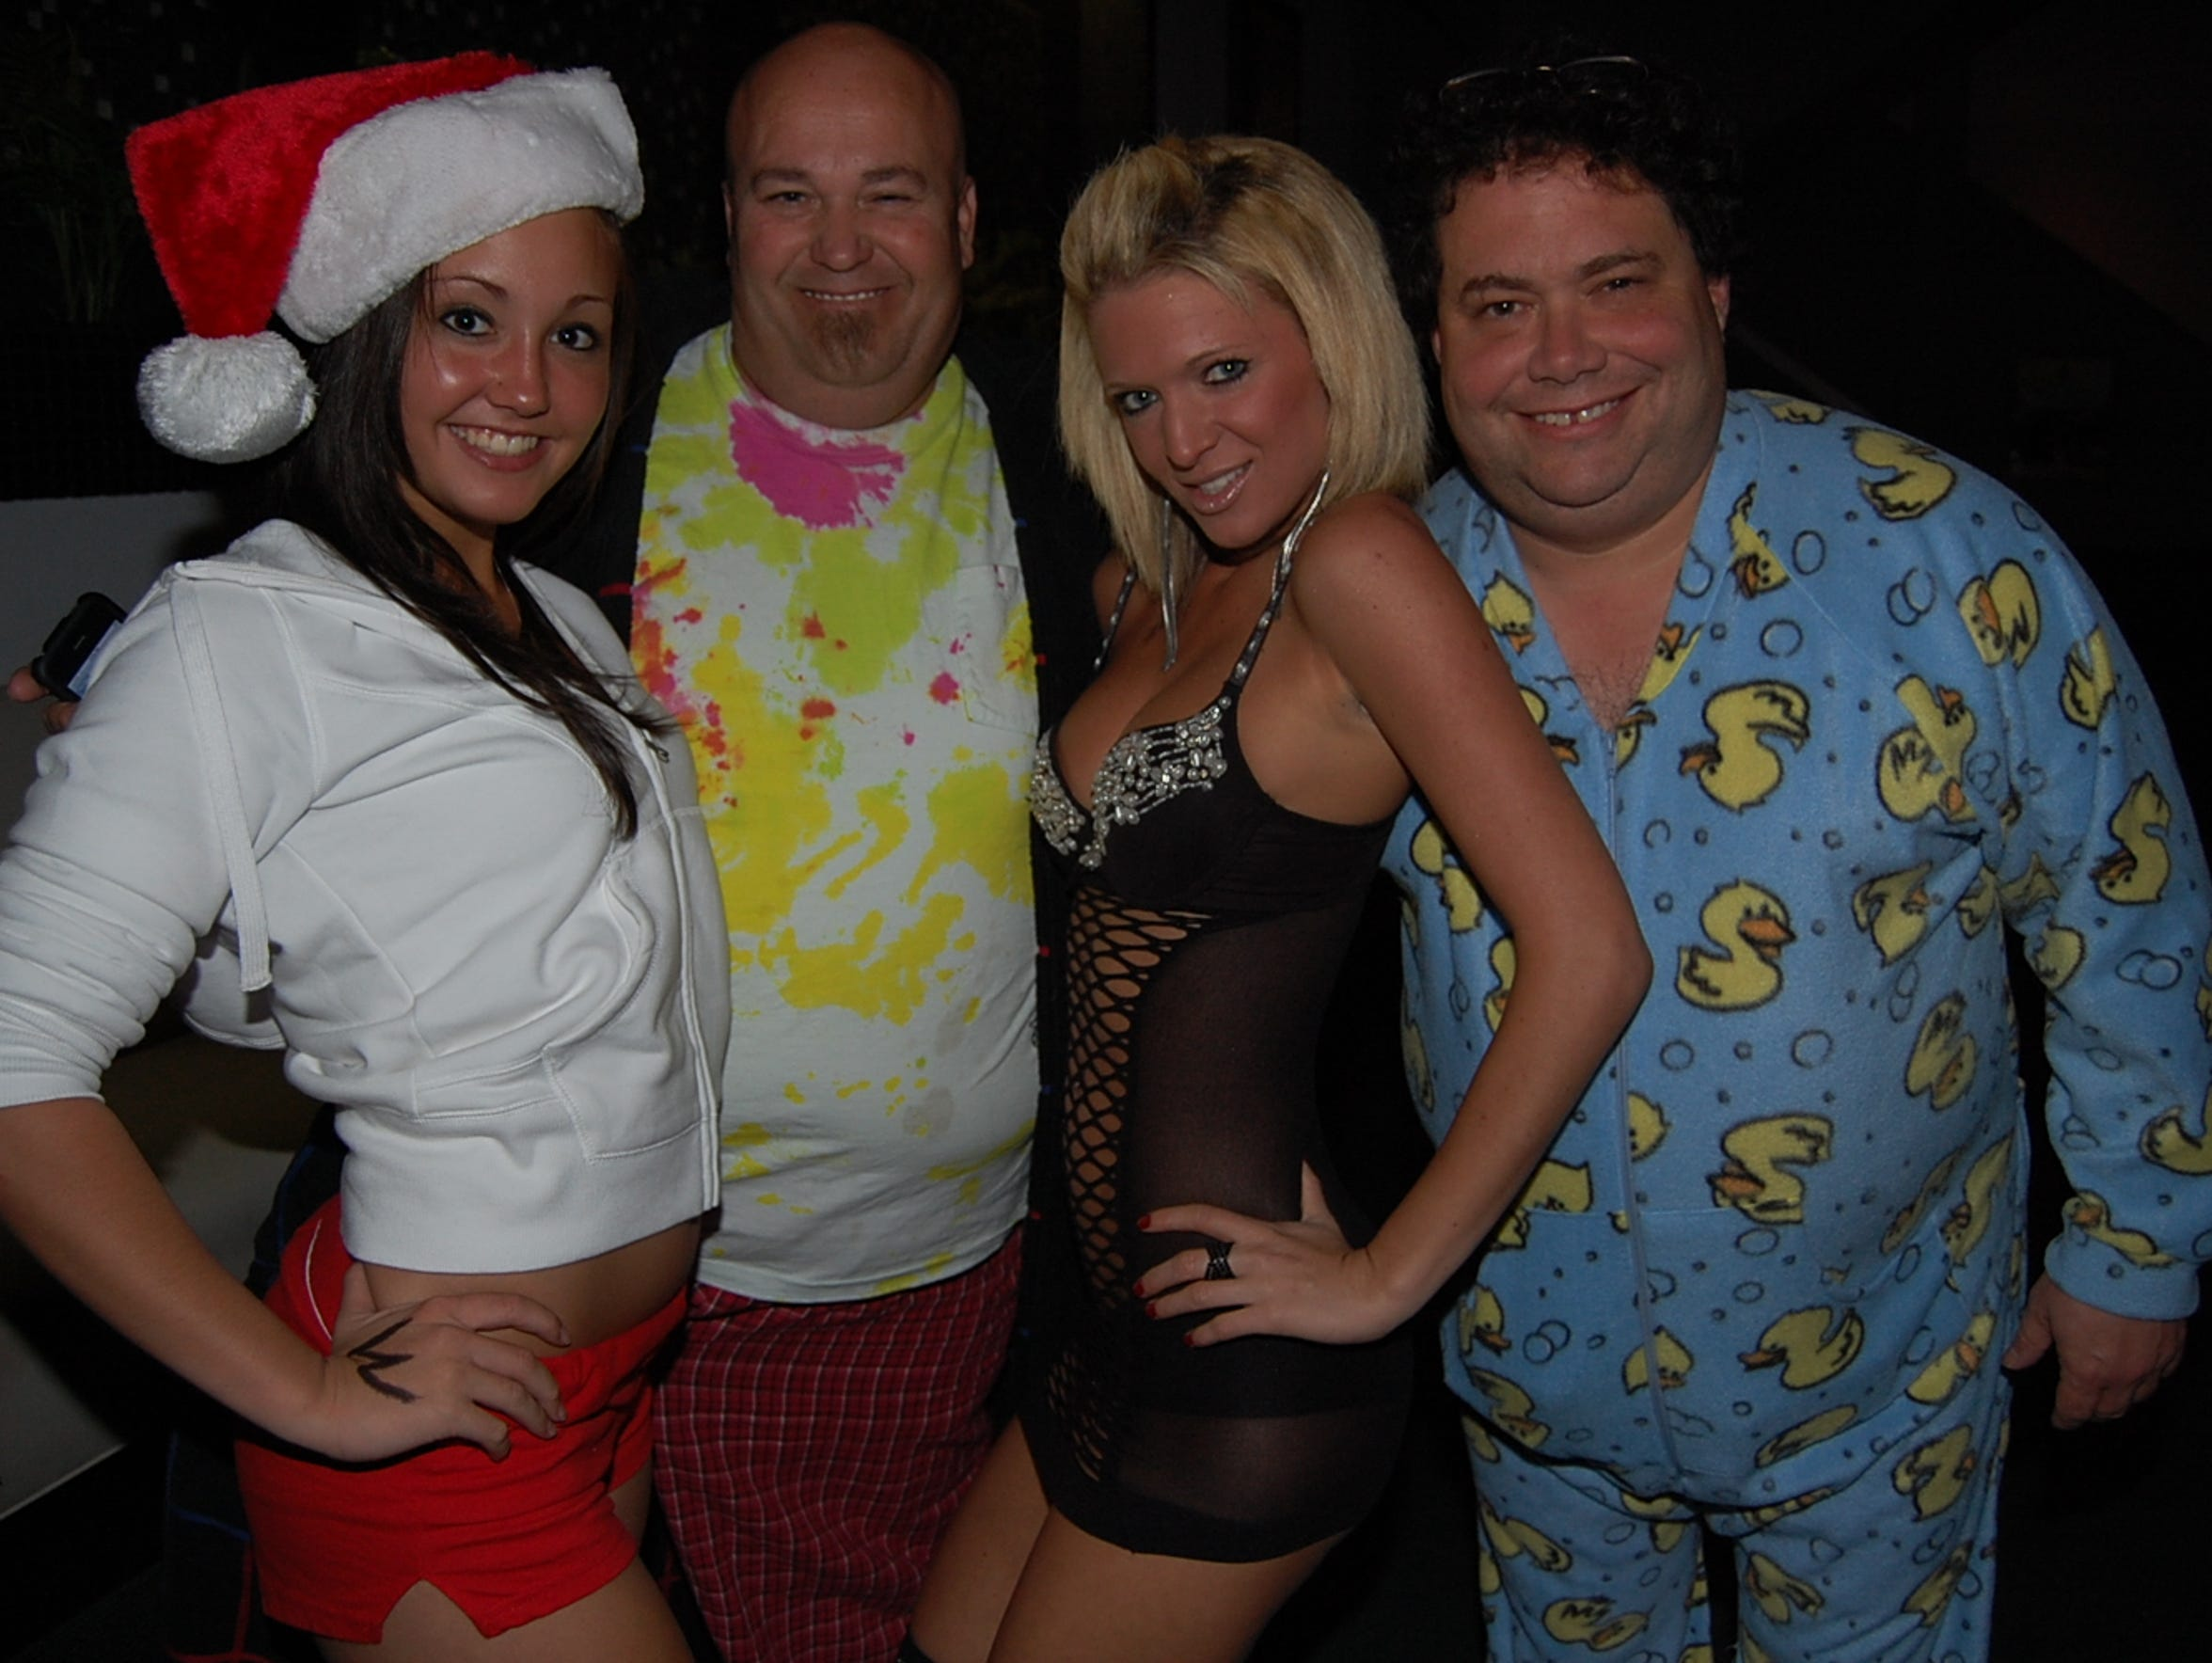 U.S. Congressman Blake Farenthold (right) was photographed